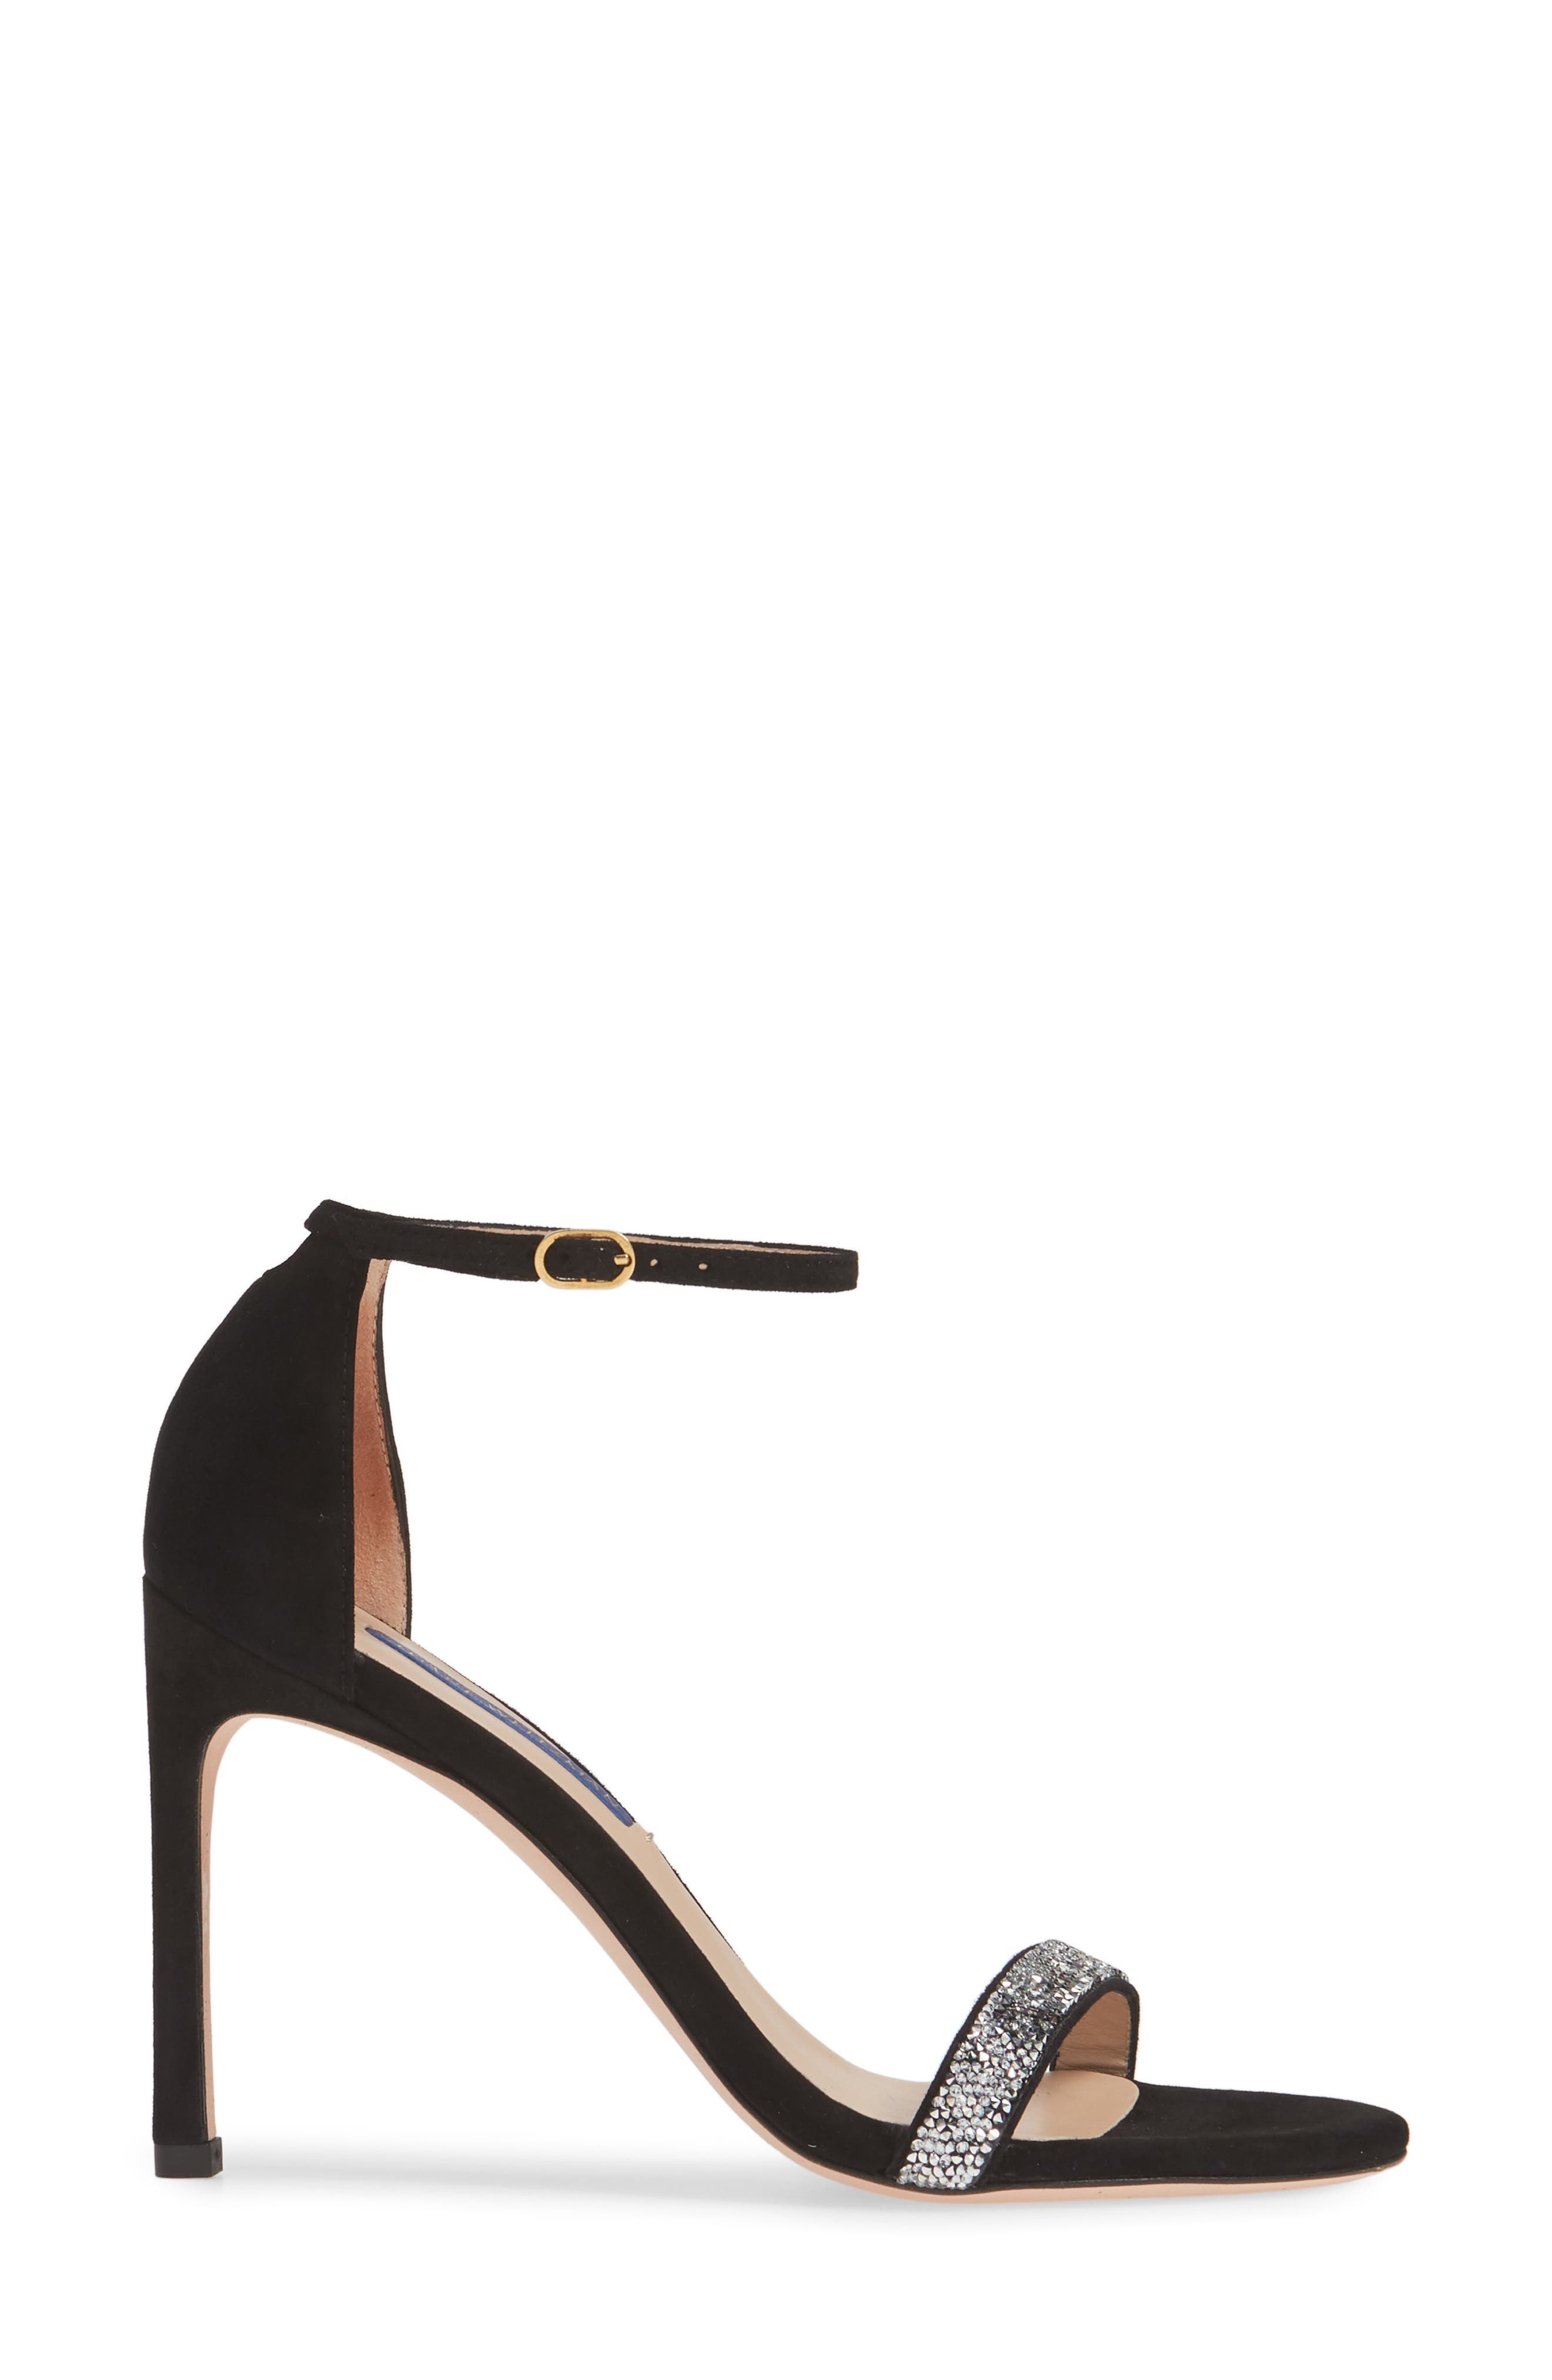 STUART WEITZMAN, Nudistsong Ankle Strap Sandal, Alternate thumbnail 3, color, BLACK